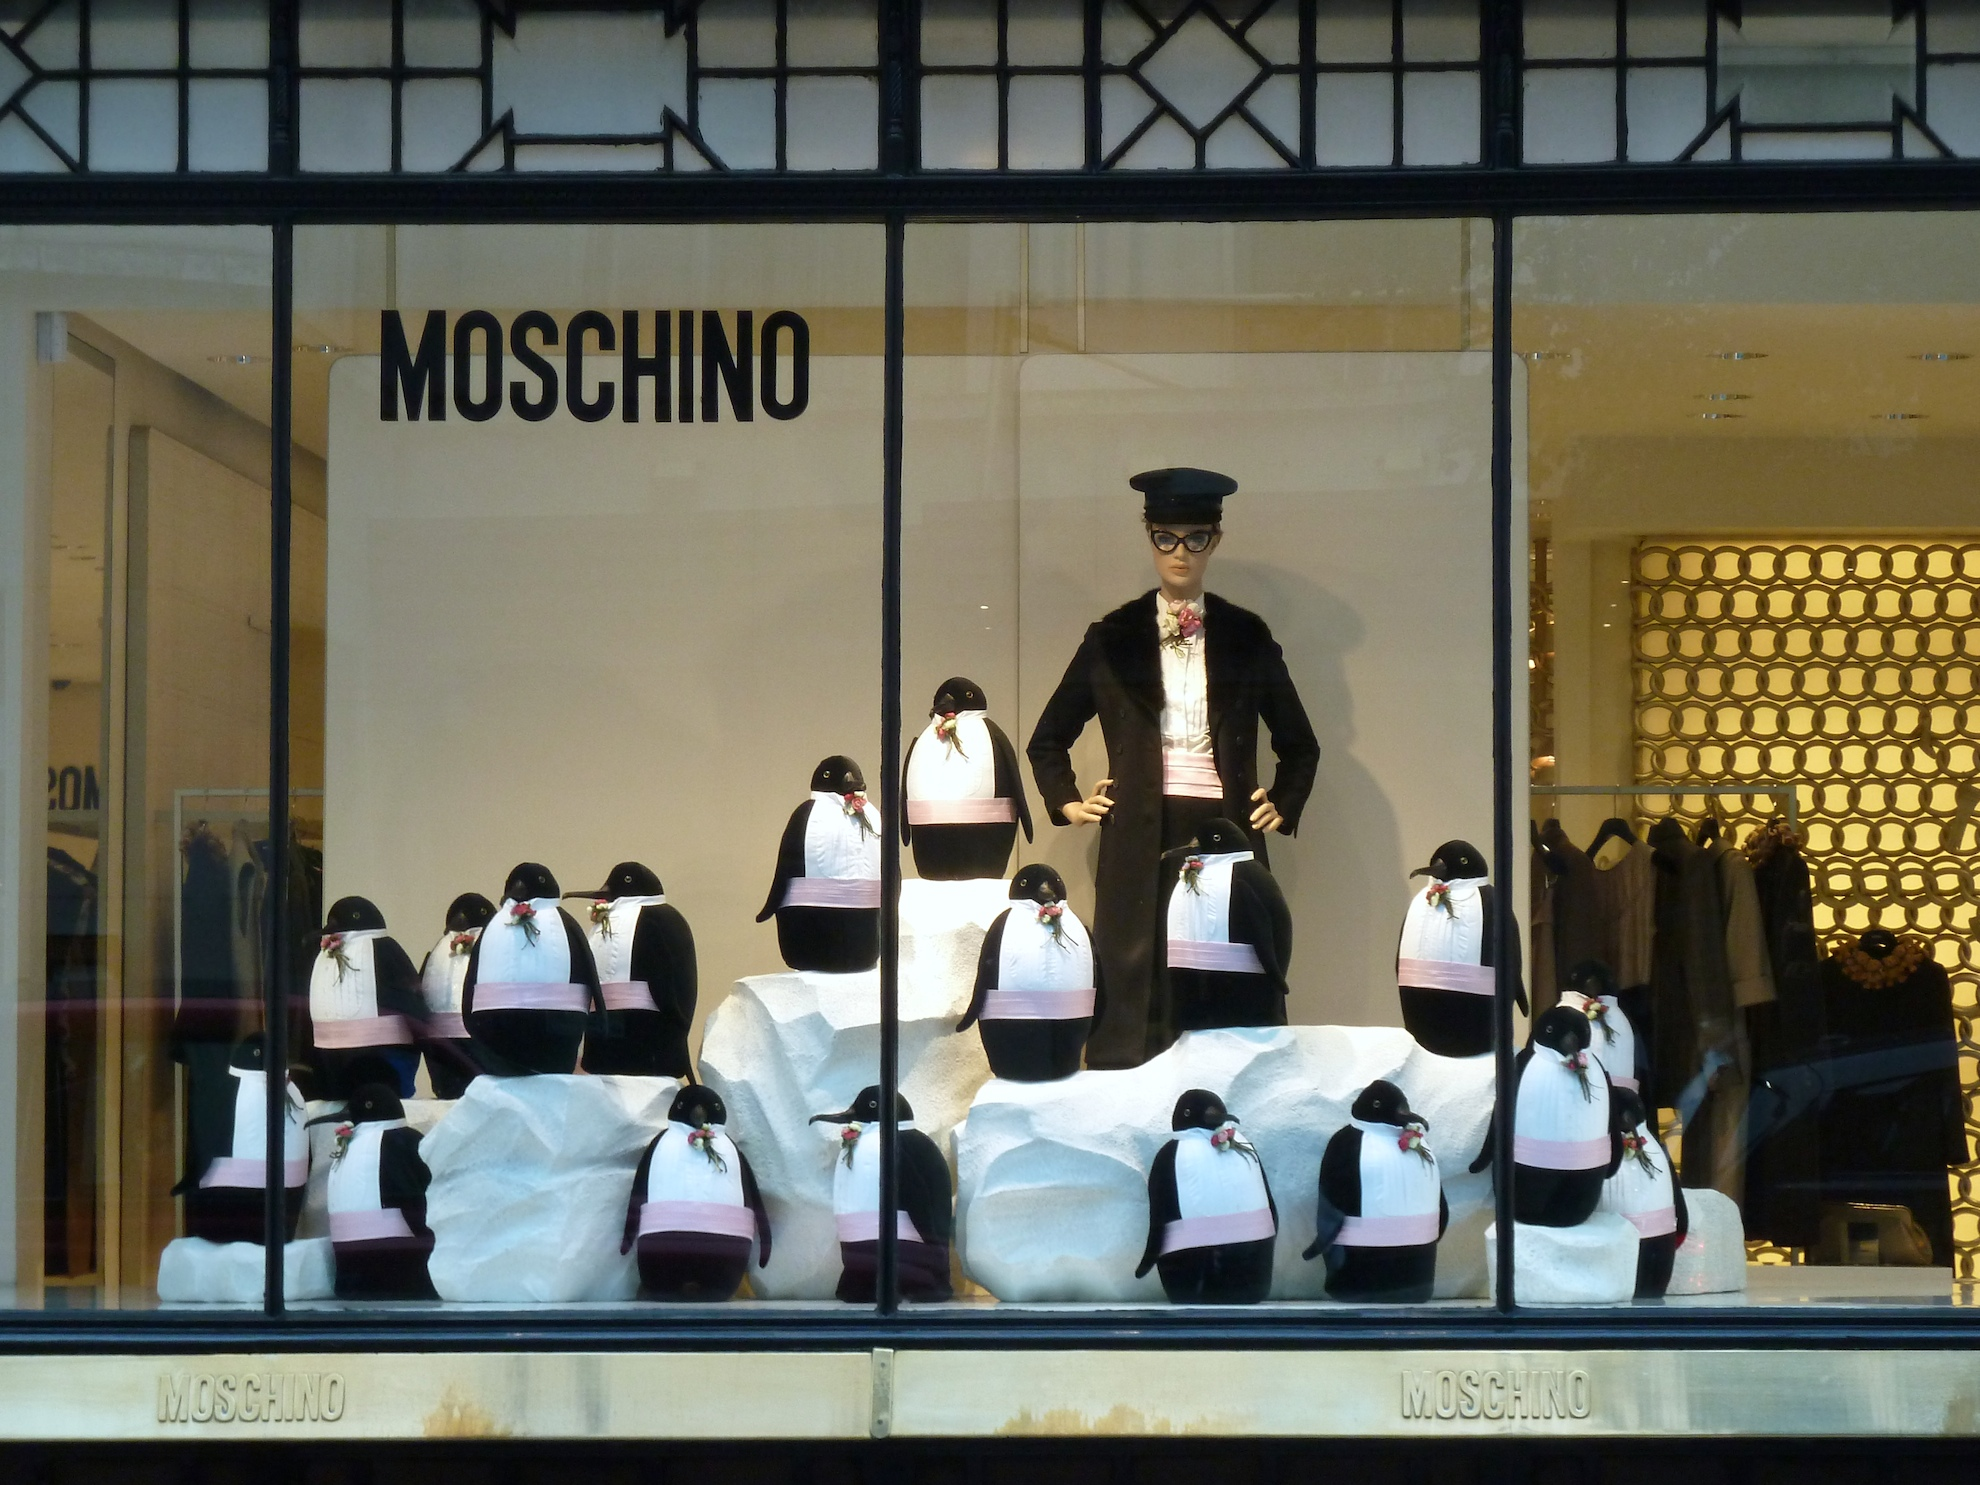 Always a pleasure for the eye to see a Moschino window display. This one is ready for winter with cute penguins in a dress suit.